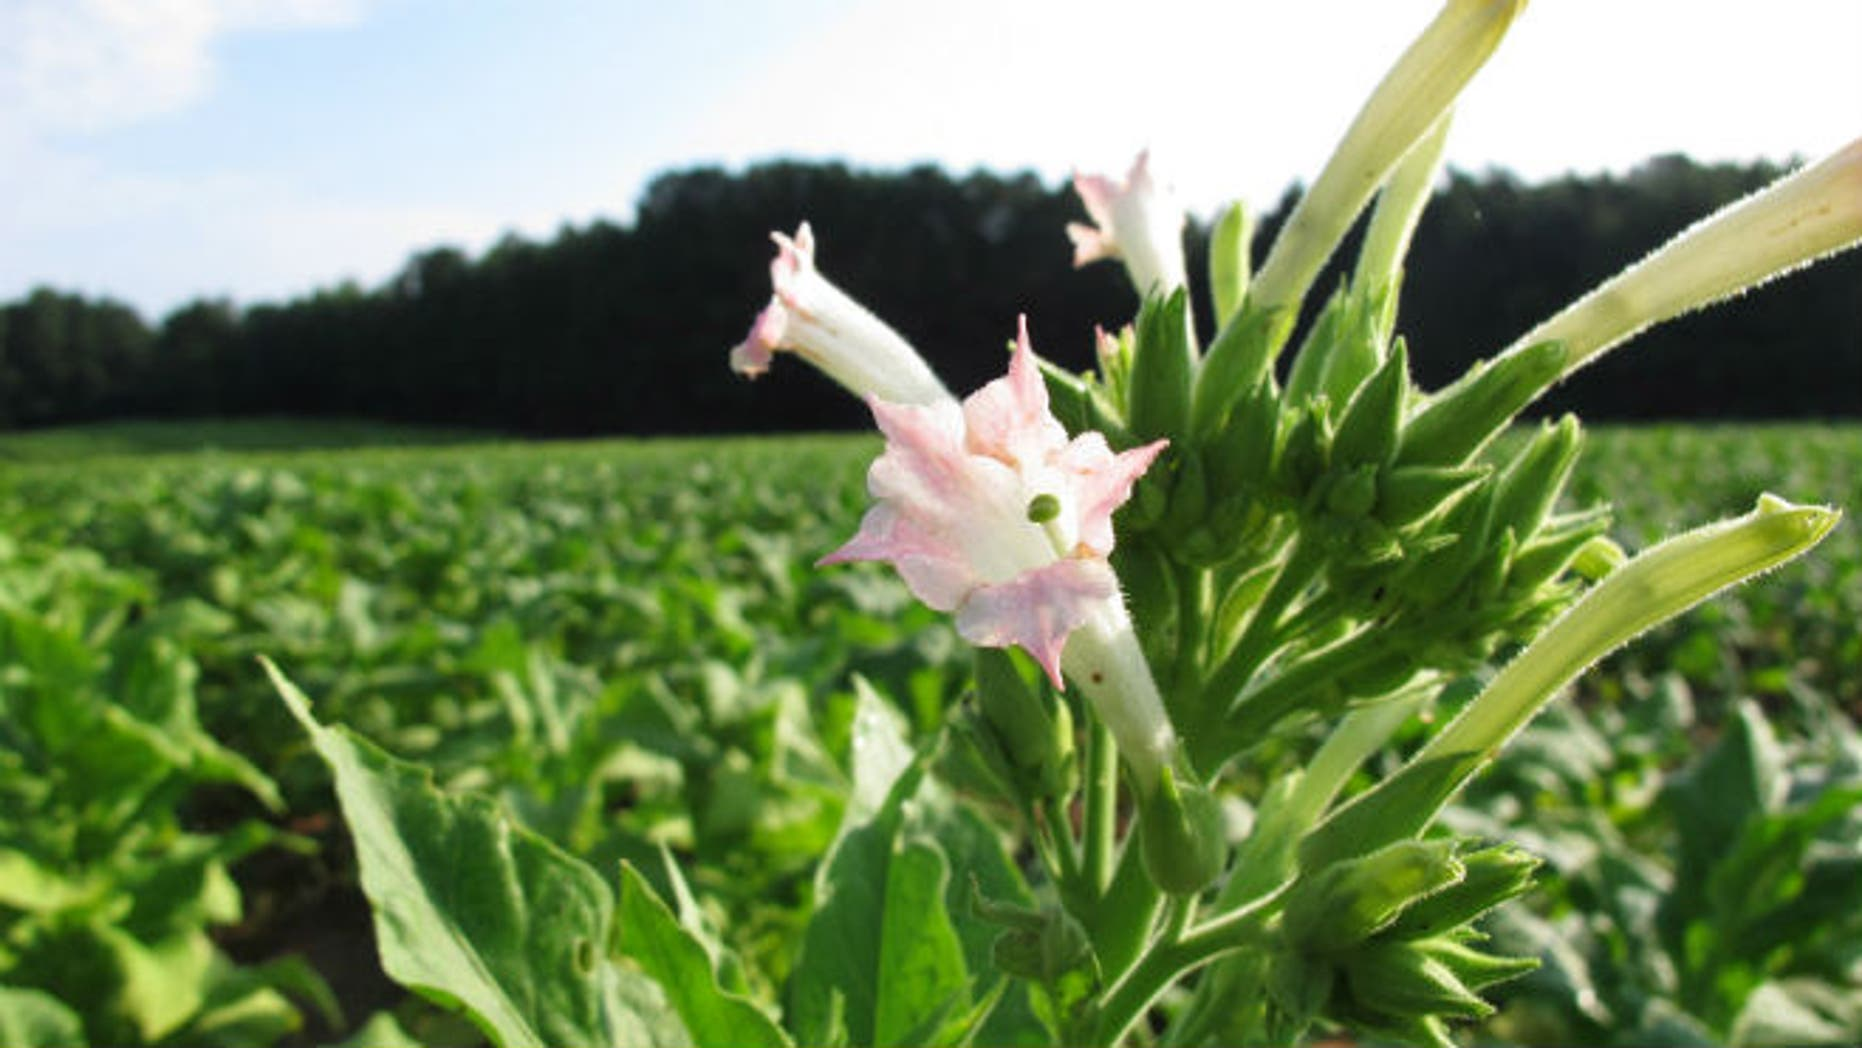 A tobacco flower waves in a dew-covered field outside Rolesville, N.C., on Wednesday, Aug. 13, 2014. (AP Photo/Allen G. Breed)